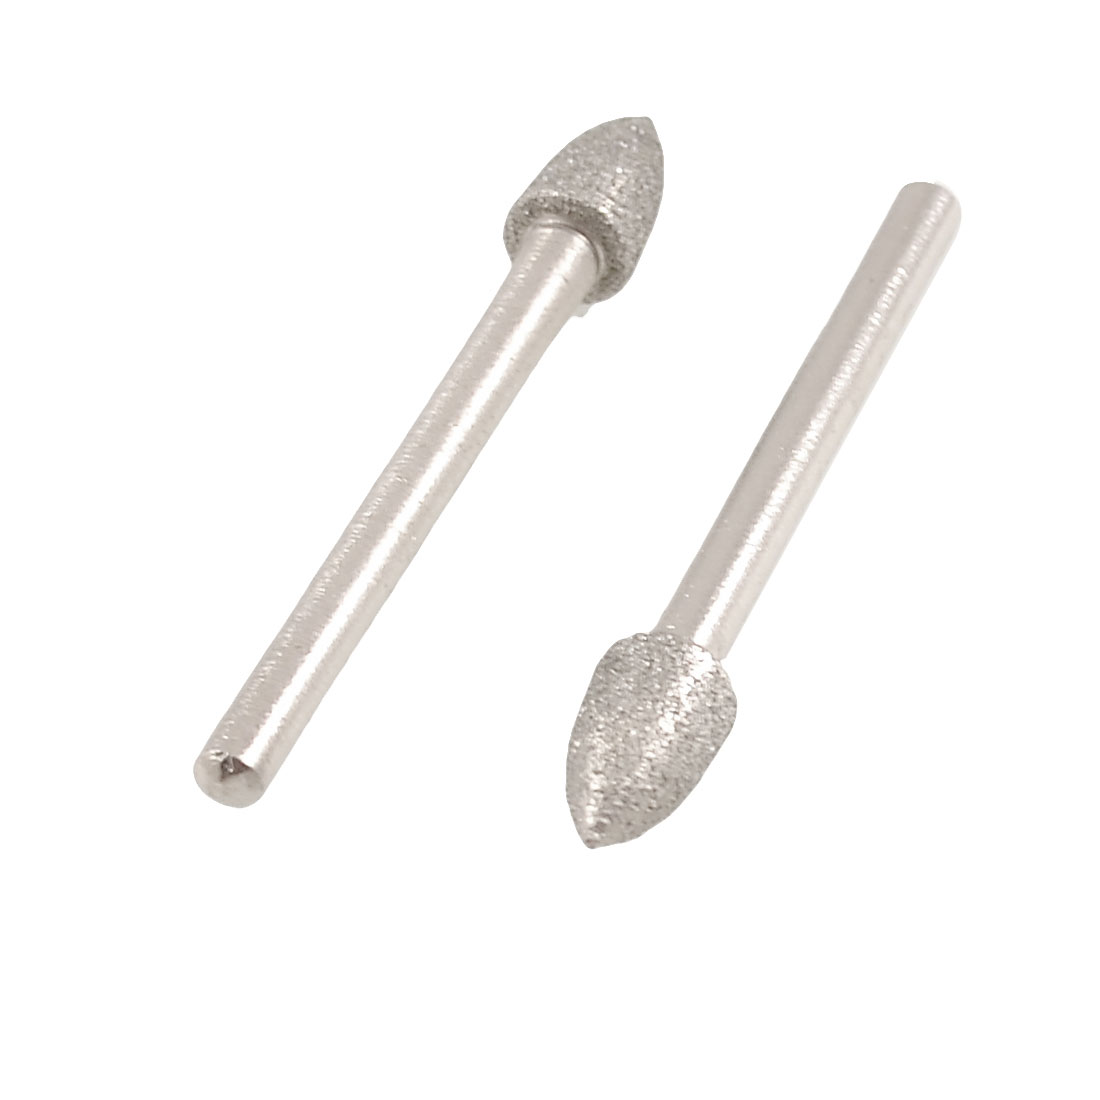 2pcs 6mm Taper Tip Grinding Bits Polisher Diamond Mounted Points